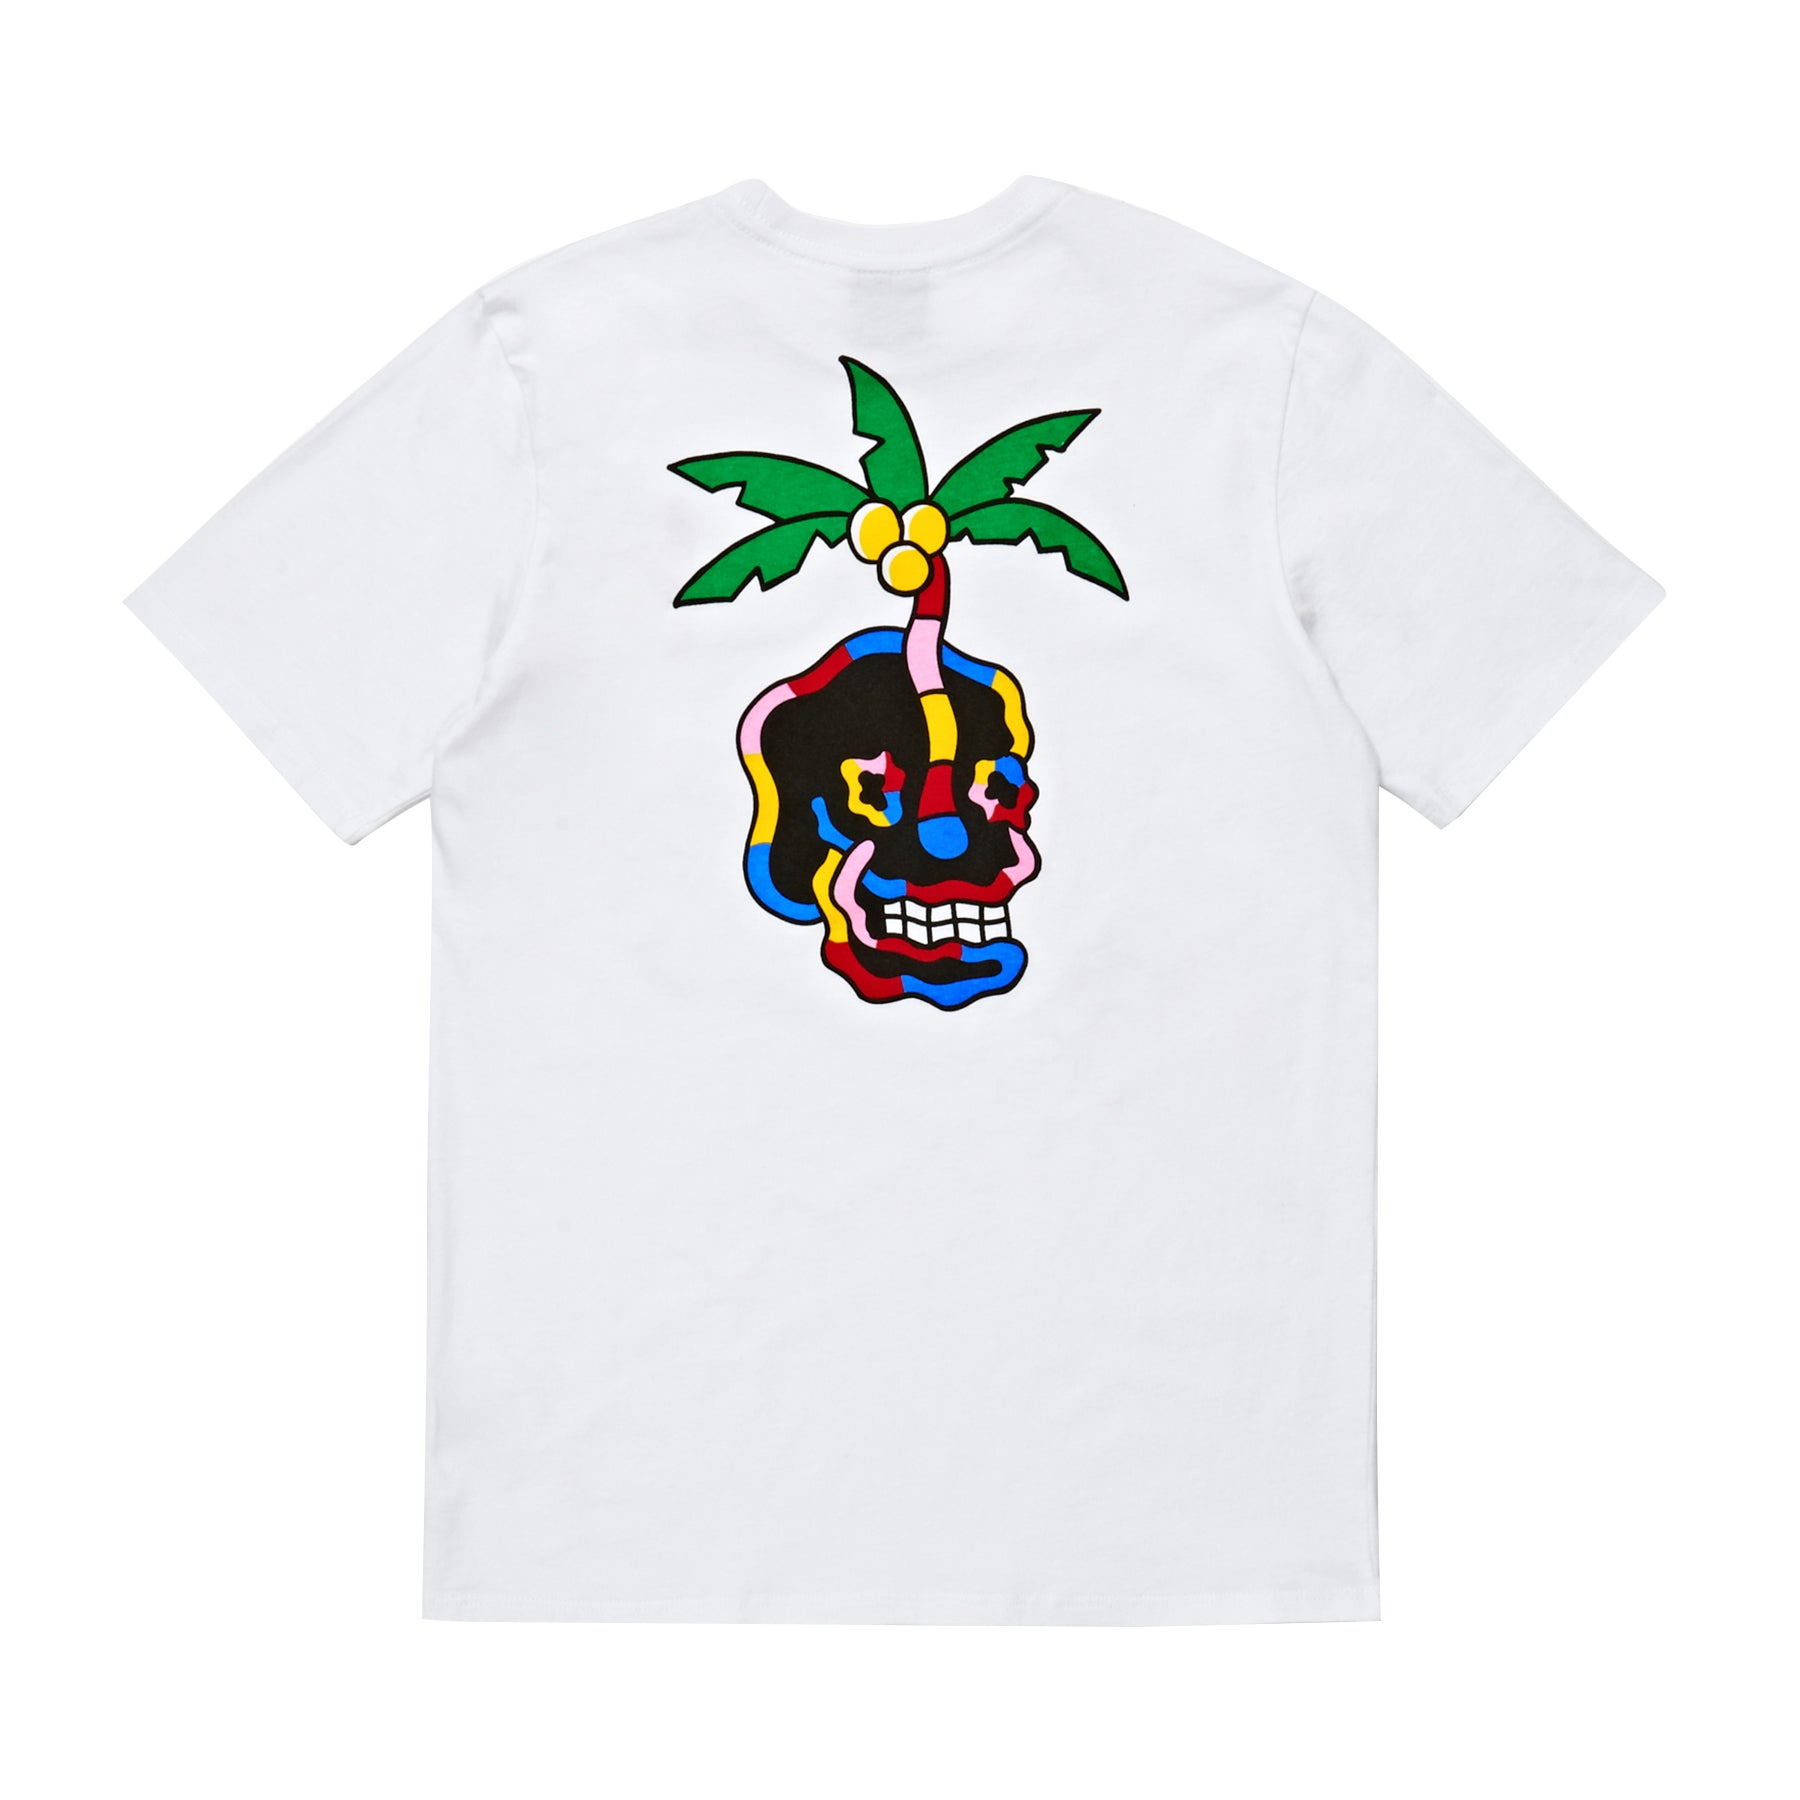 8ac4a1bd4eb2 SWELL Desciples Tee Boys Short Sleeve T-Shirt available from Surfdome